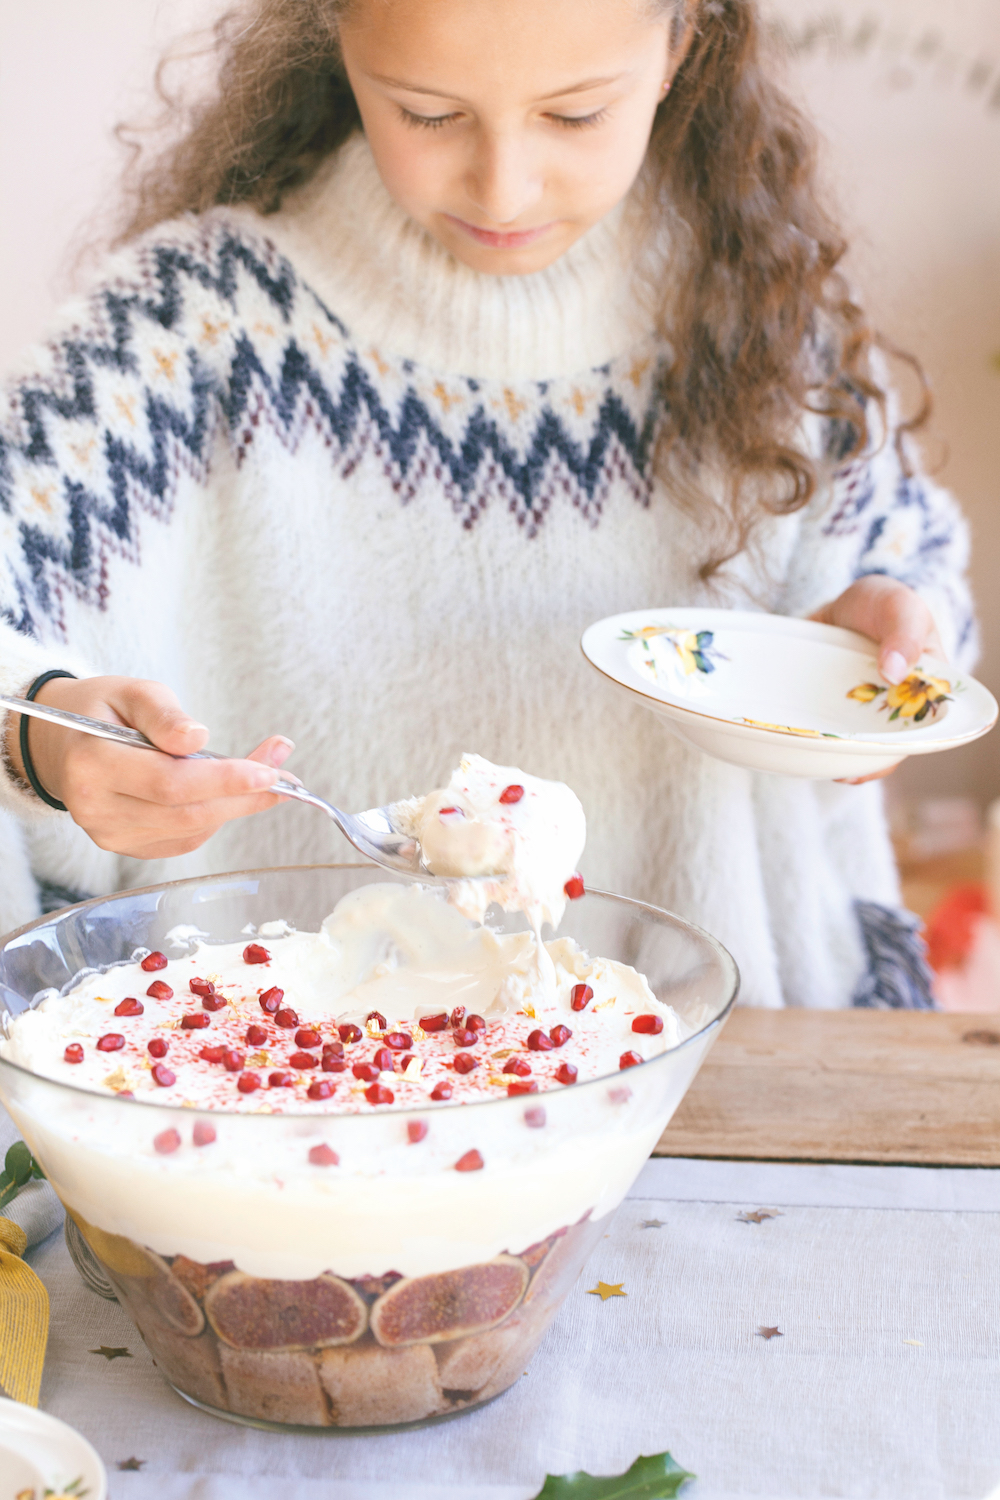 Recipes: Lia Leendertz, photography: Kirstie Young